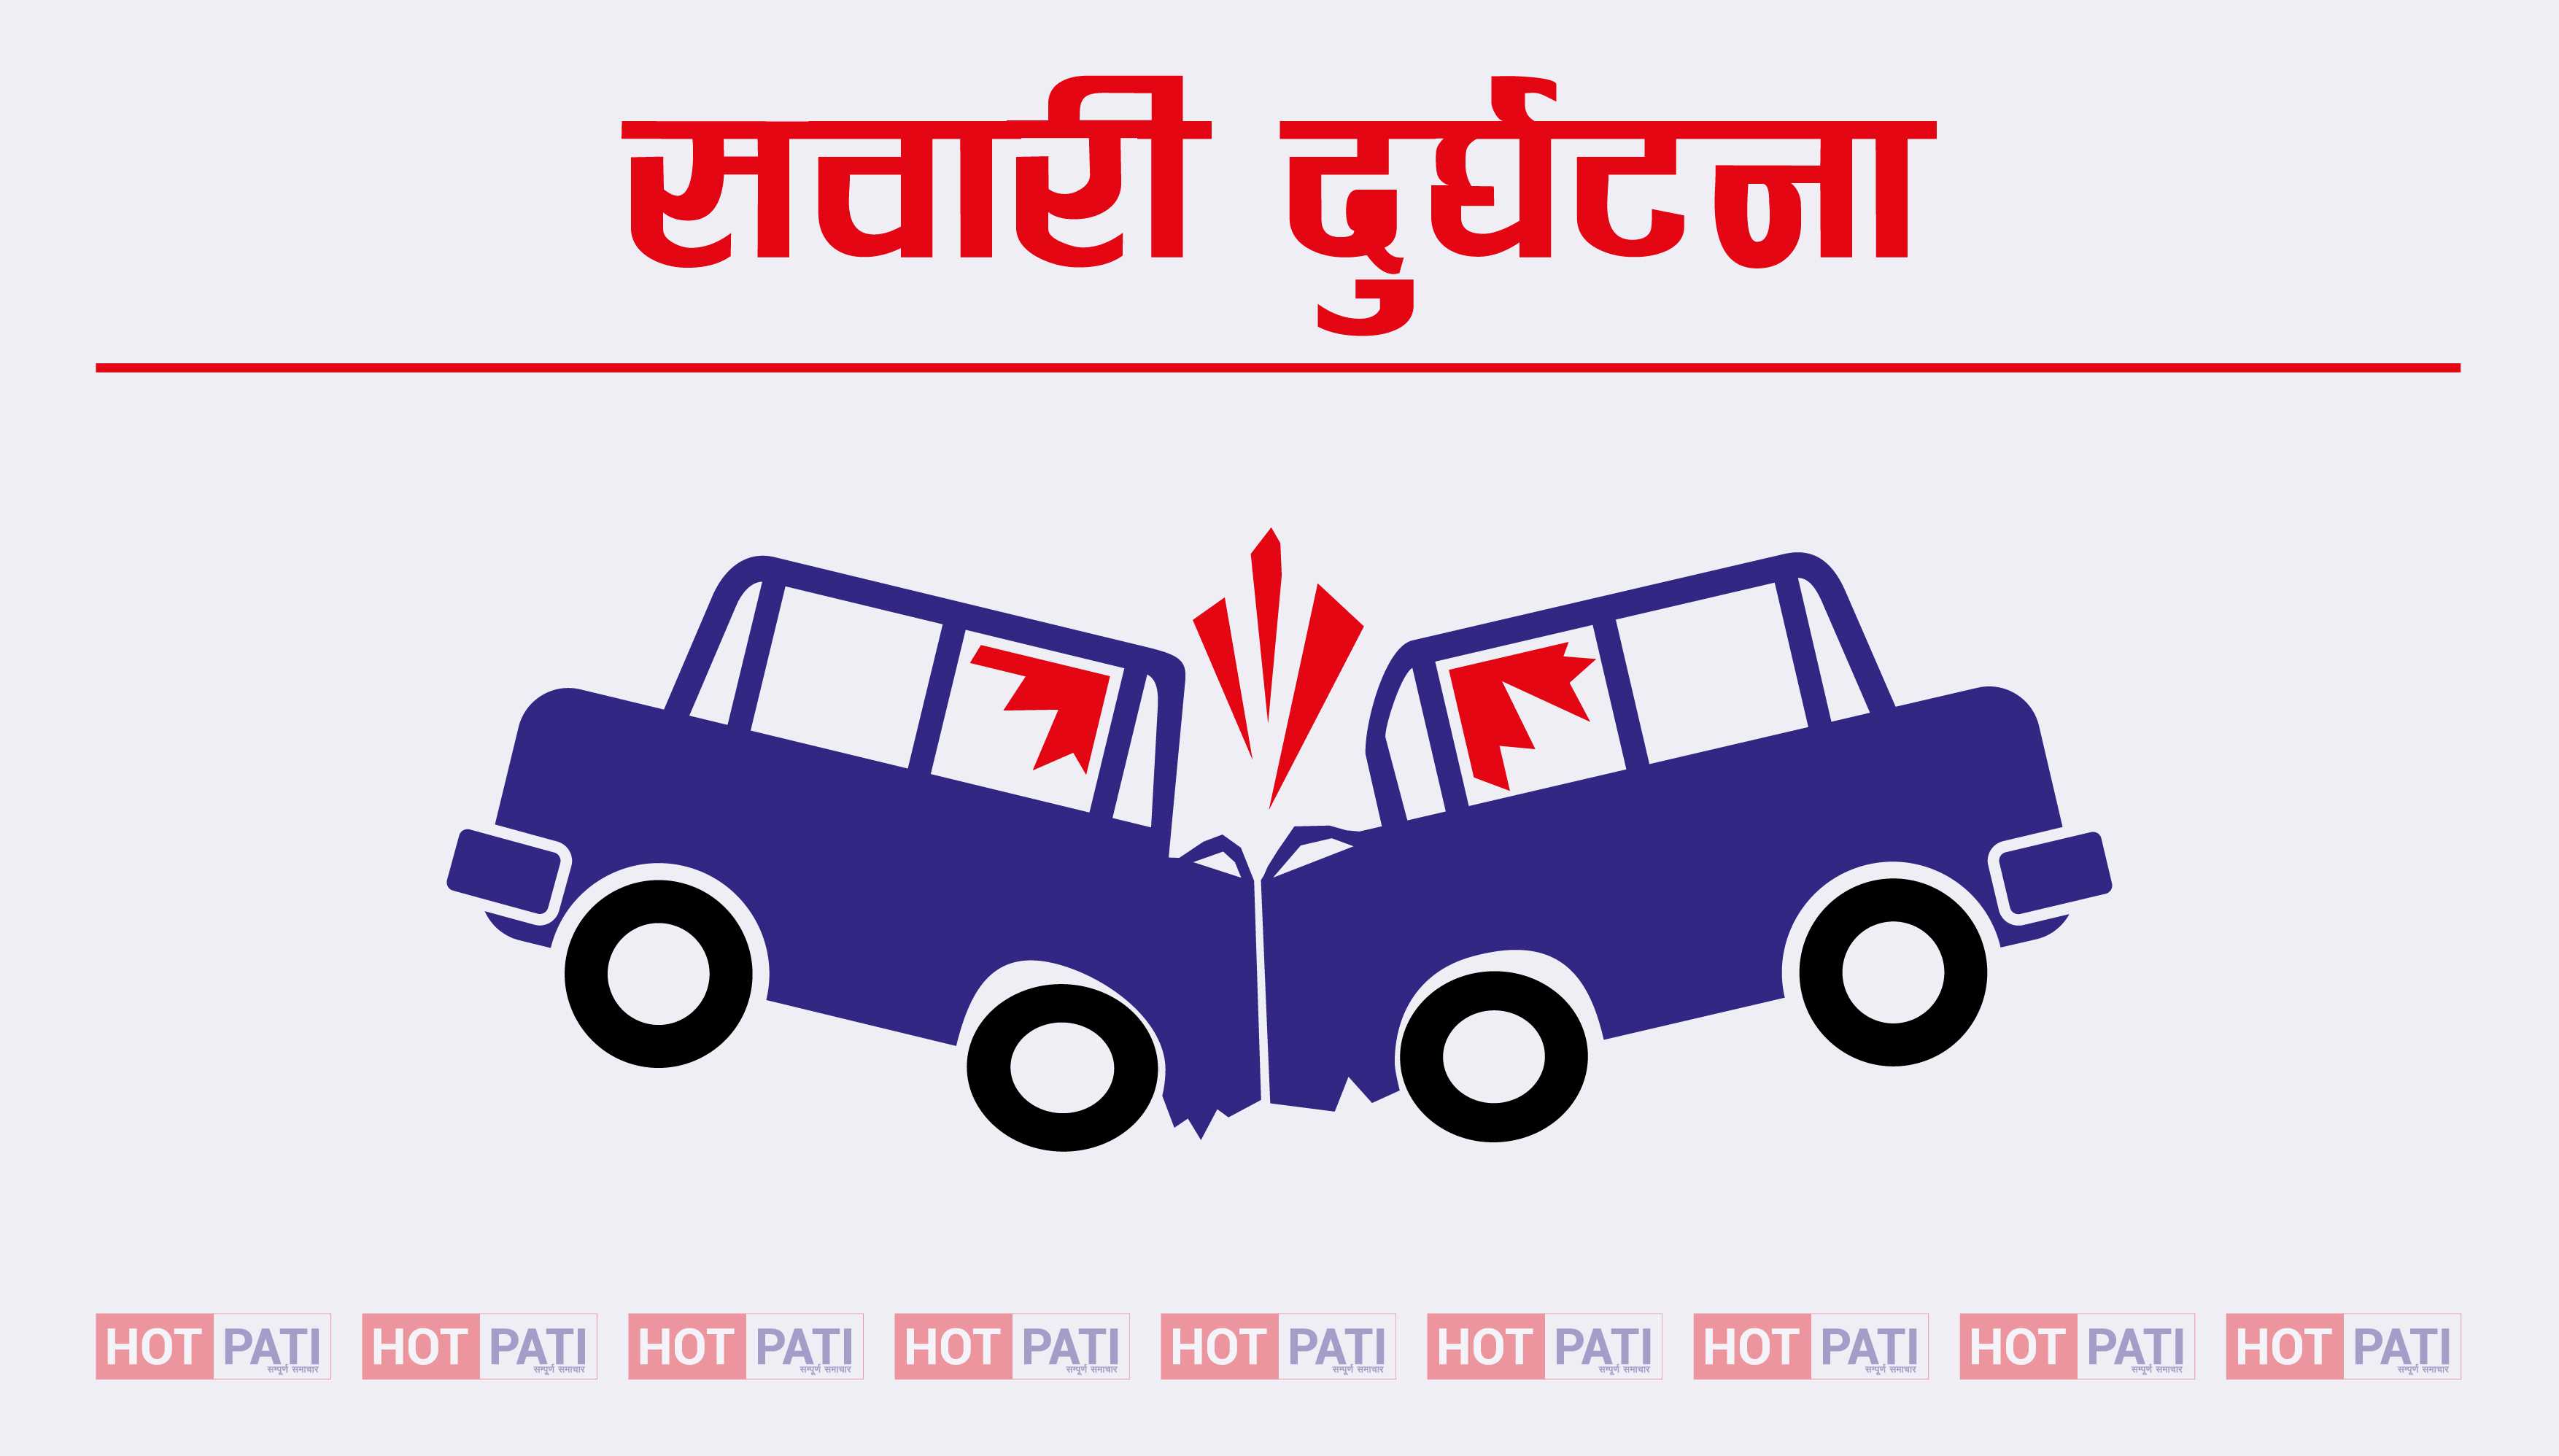 Accident hotpati